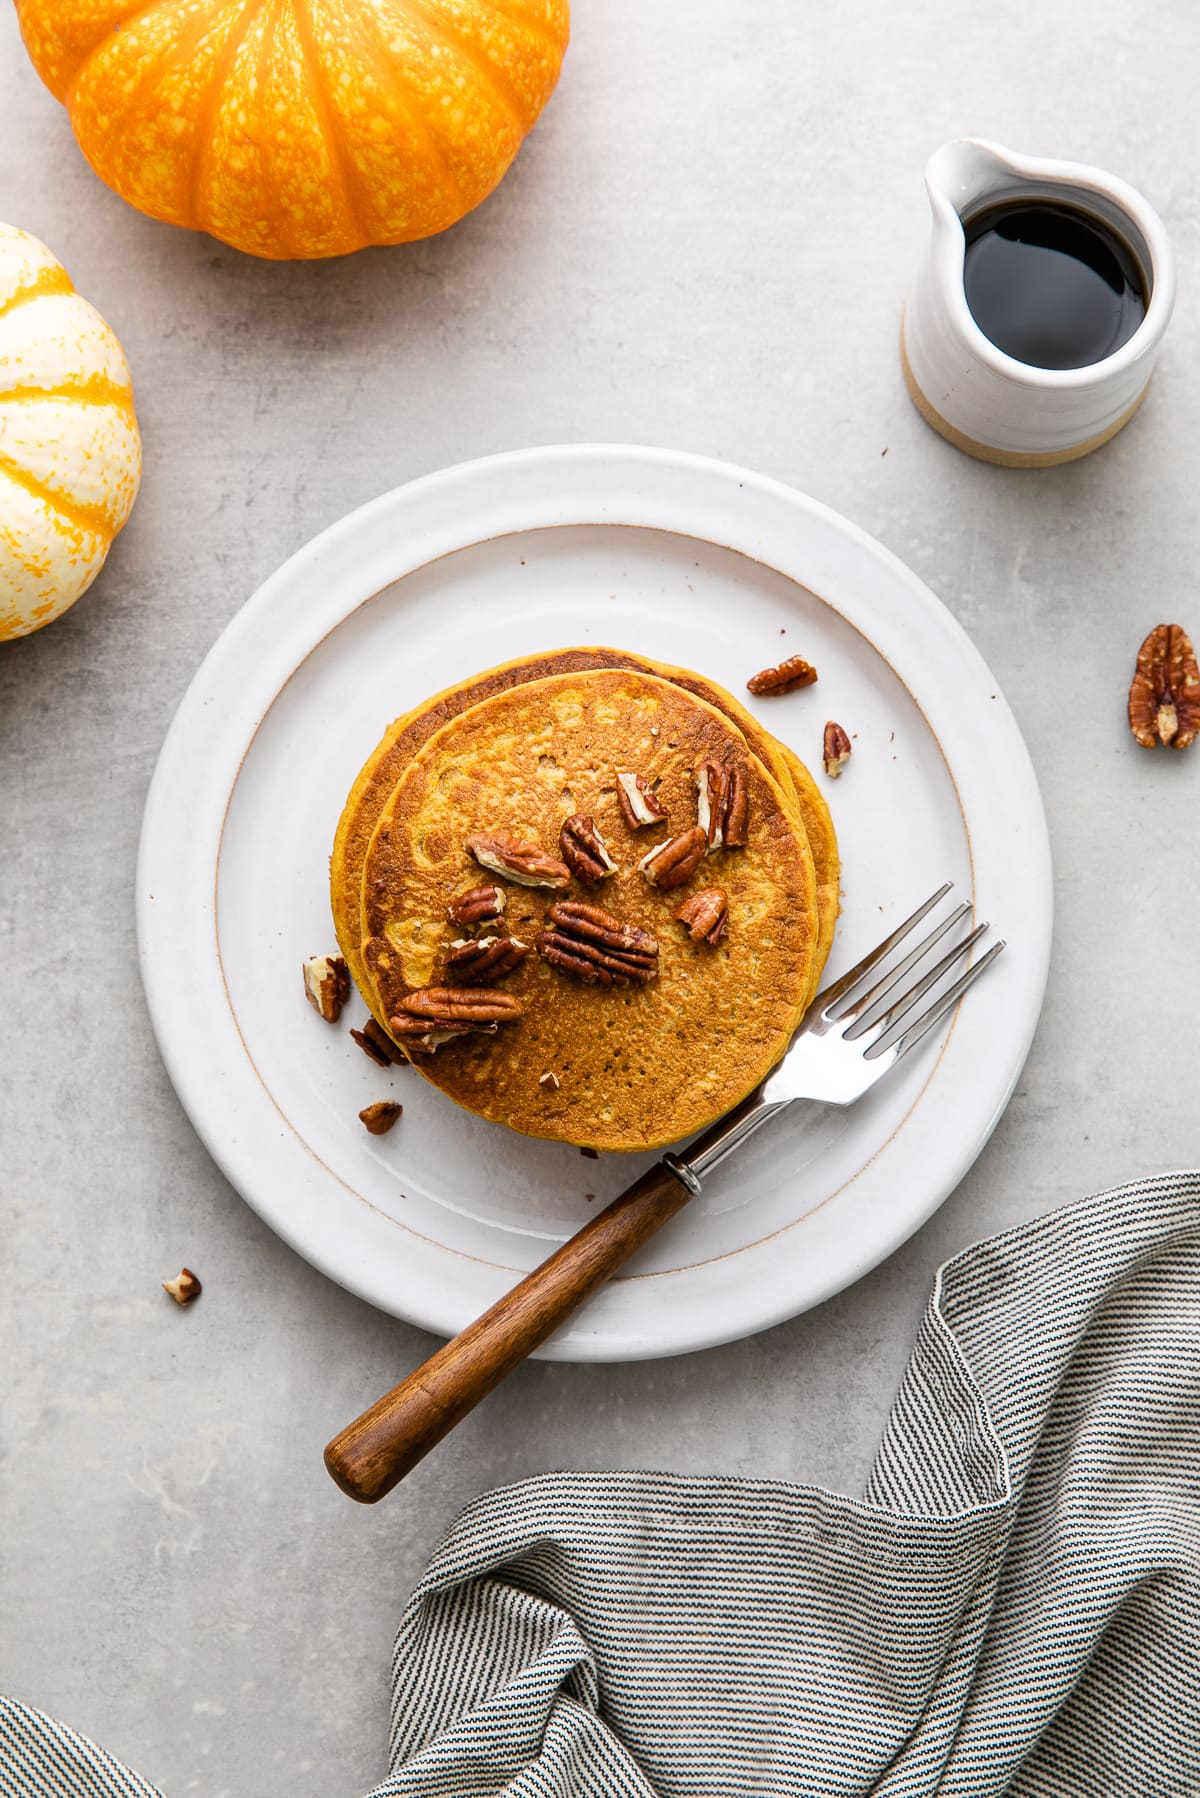 top down view of freshly made pumpkin pancakes on a plate with fork and items surrounding.